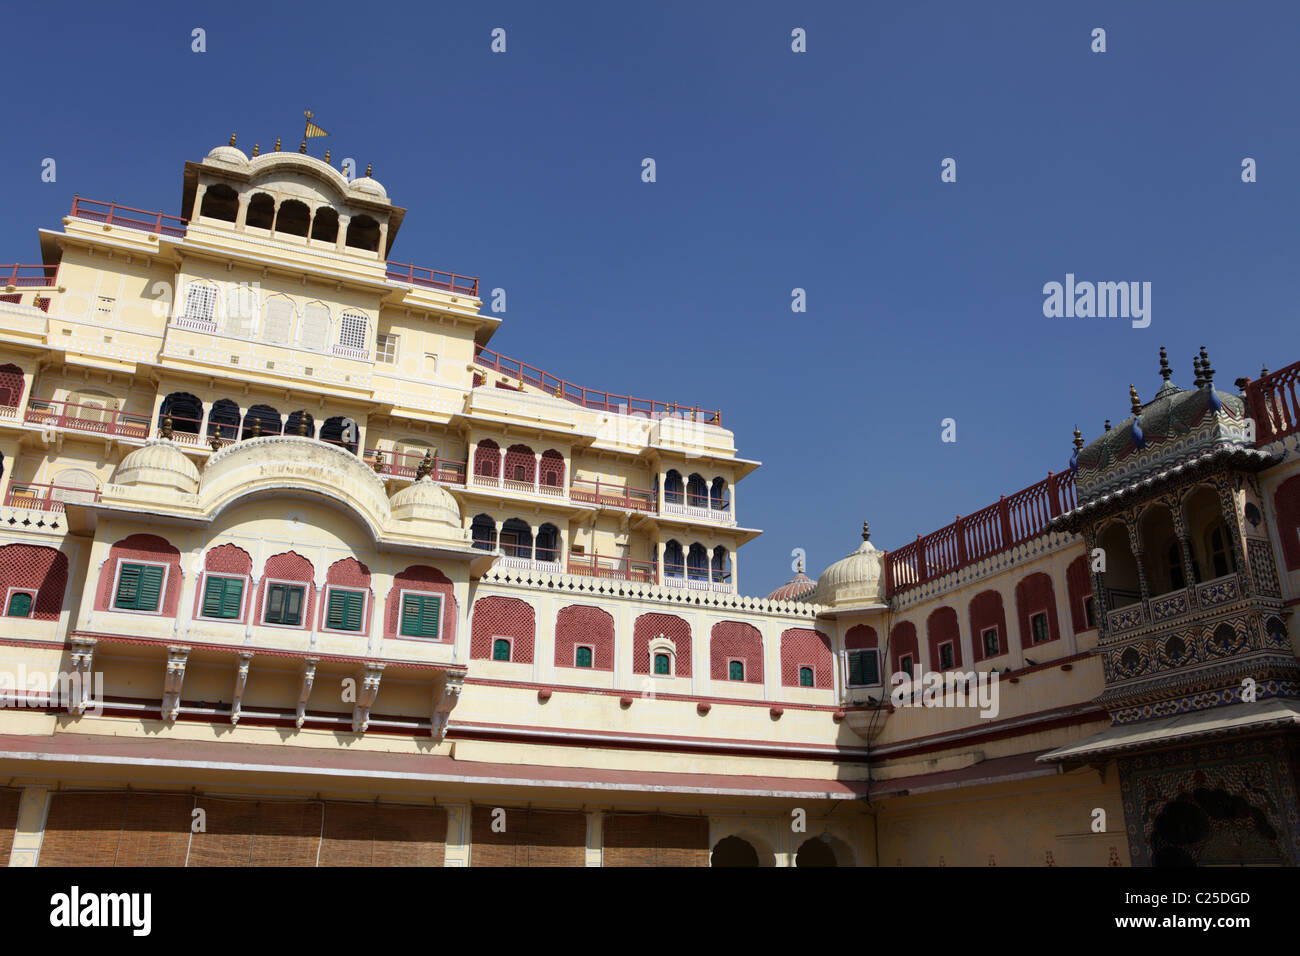 Chandra Mahal palace in Jaipur, India Stock Photo